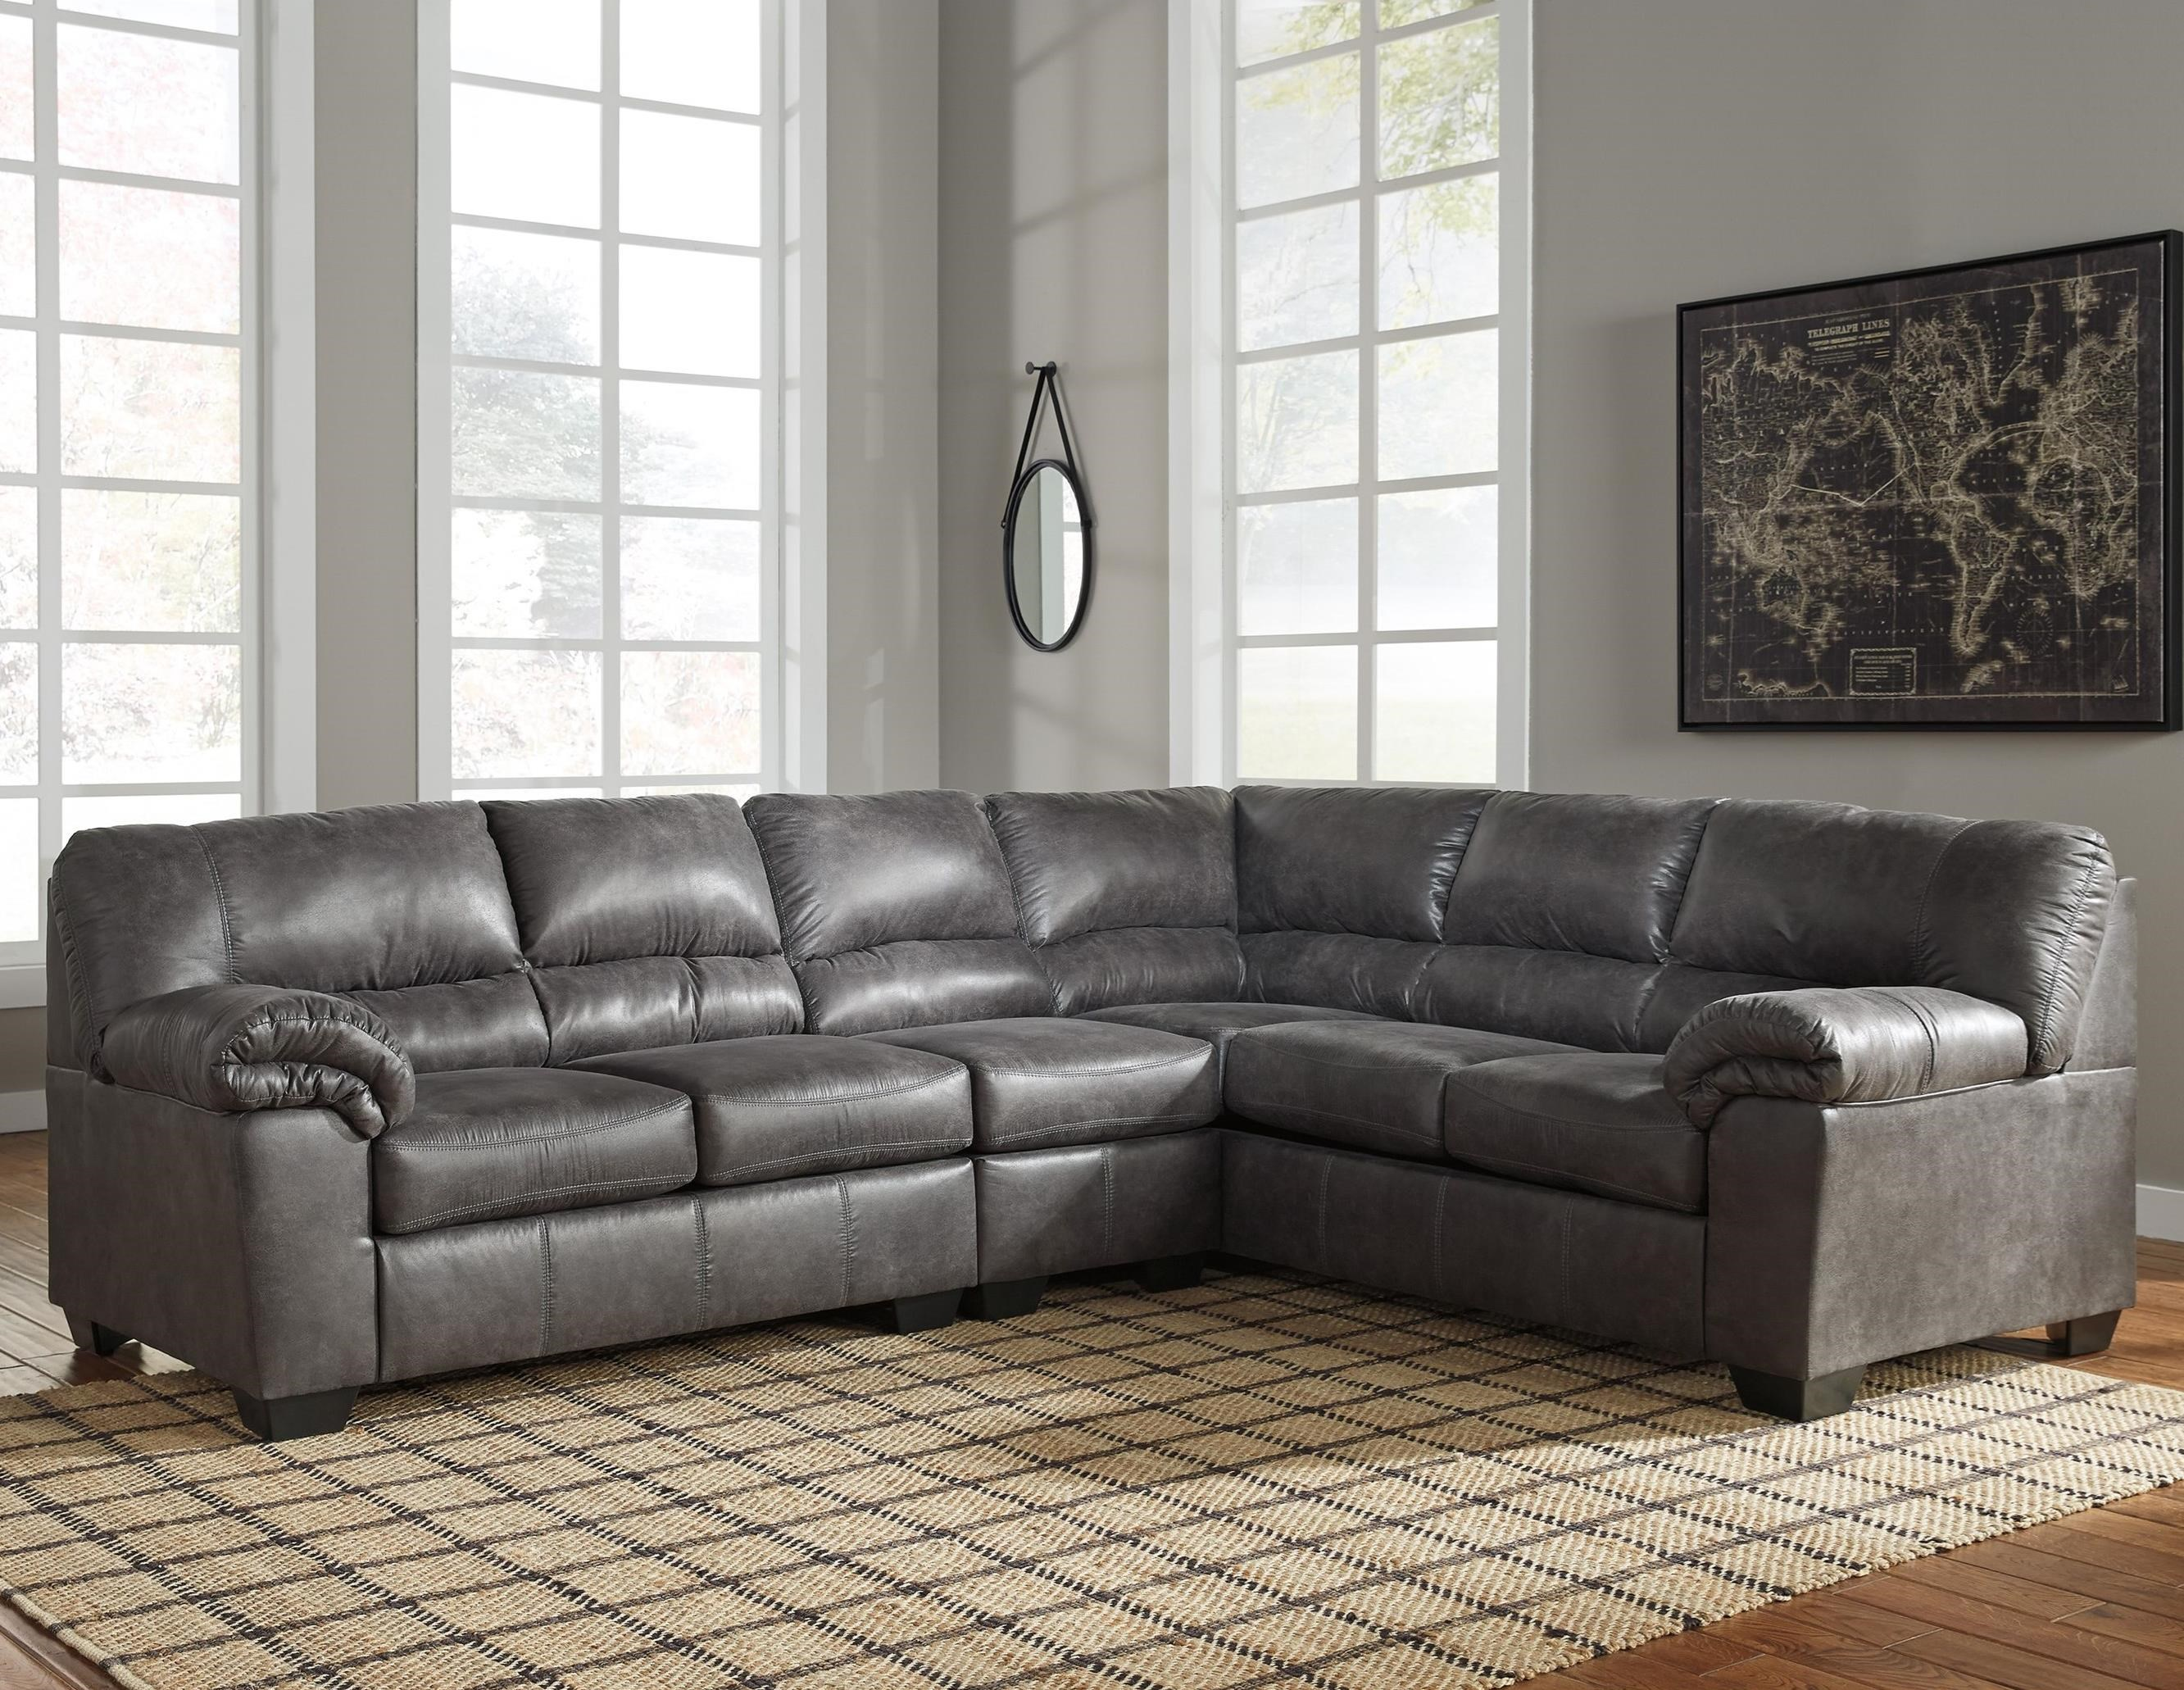 Signature Design By Ashley Bladen 3 Piece Faux Leather Sectional Knight Furniture Mattress